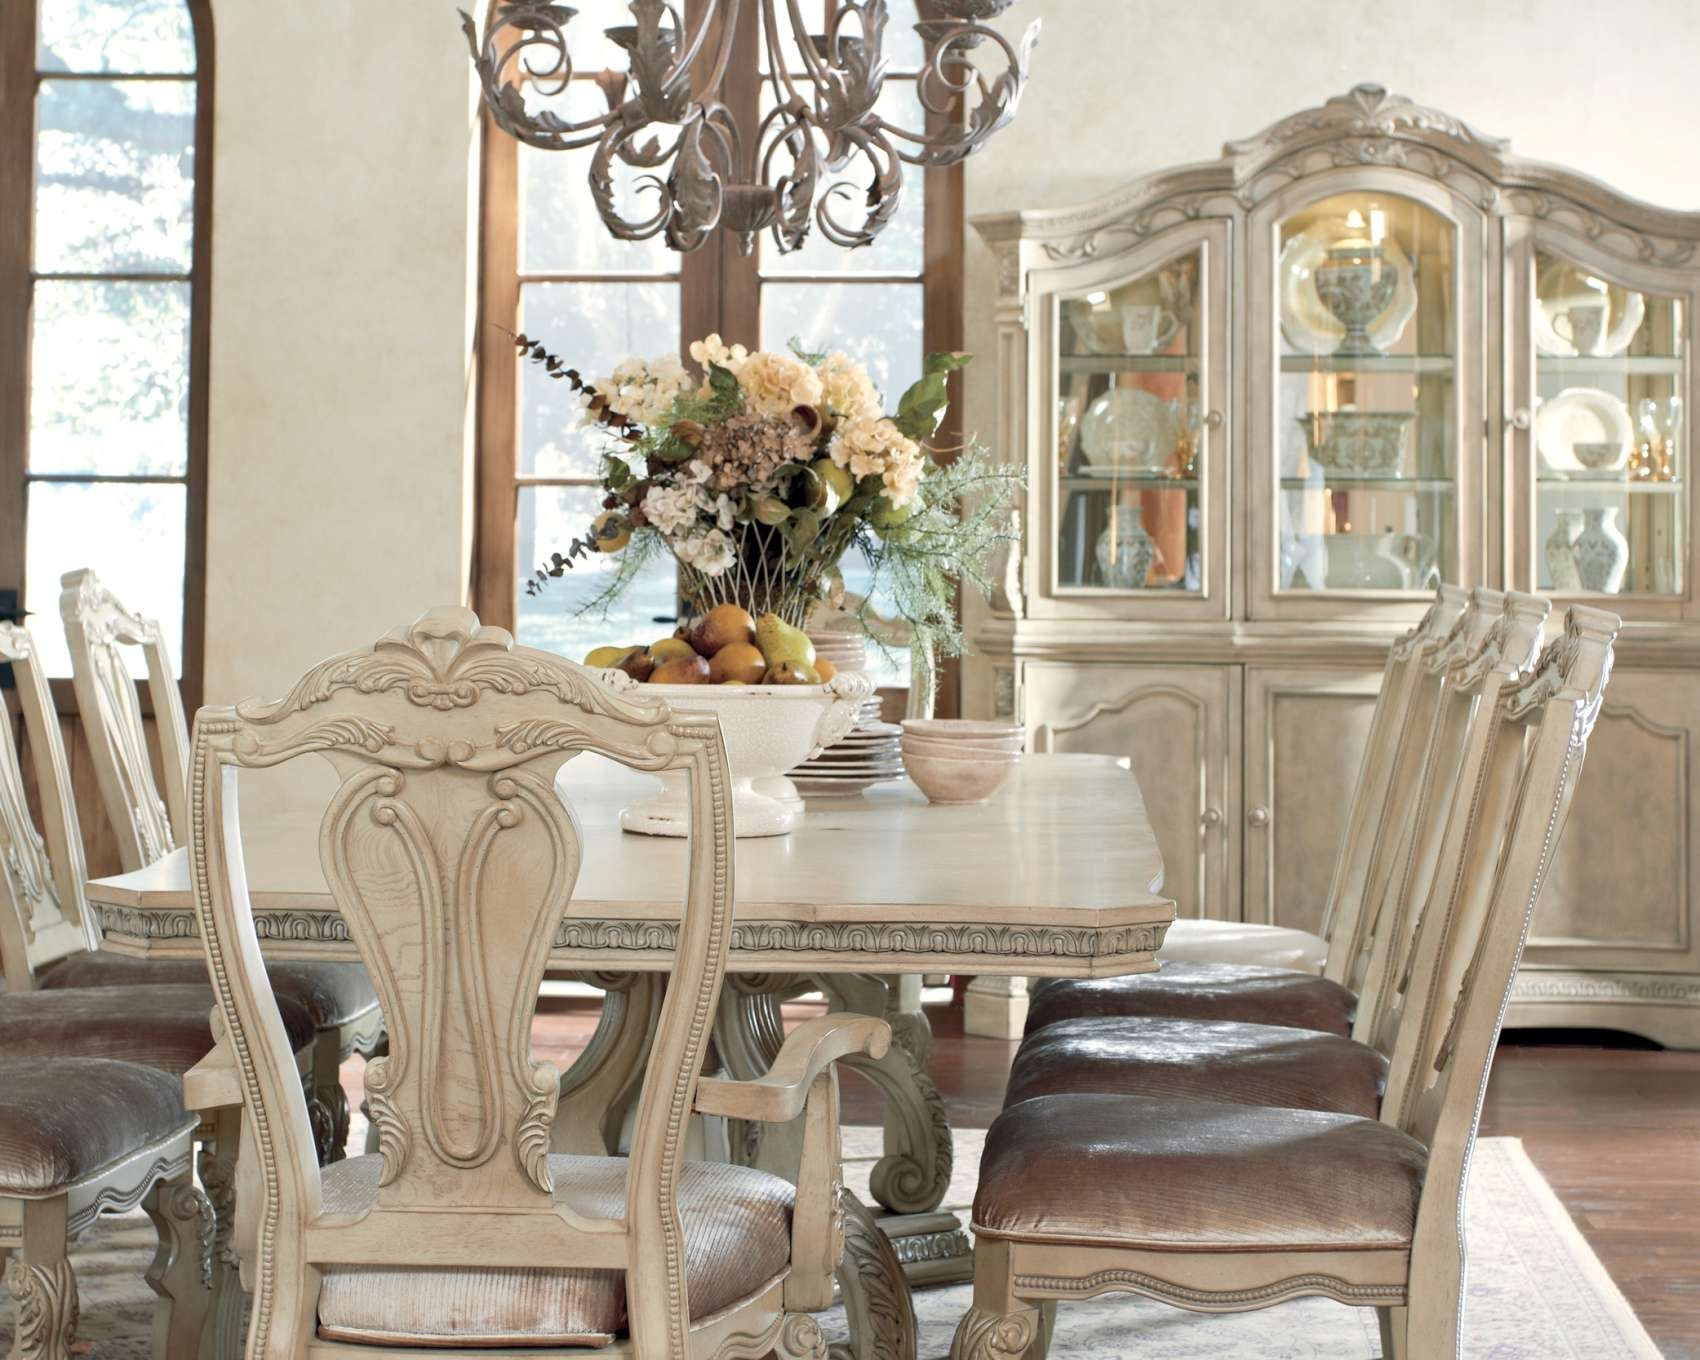 Ortanique Dining Room Furniture & Ortanique Dining Room Furniture | http://fmufpi.net | Pinterest ...